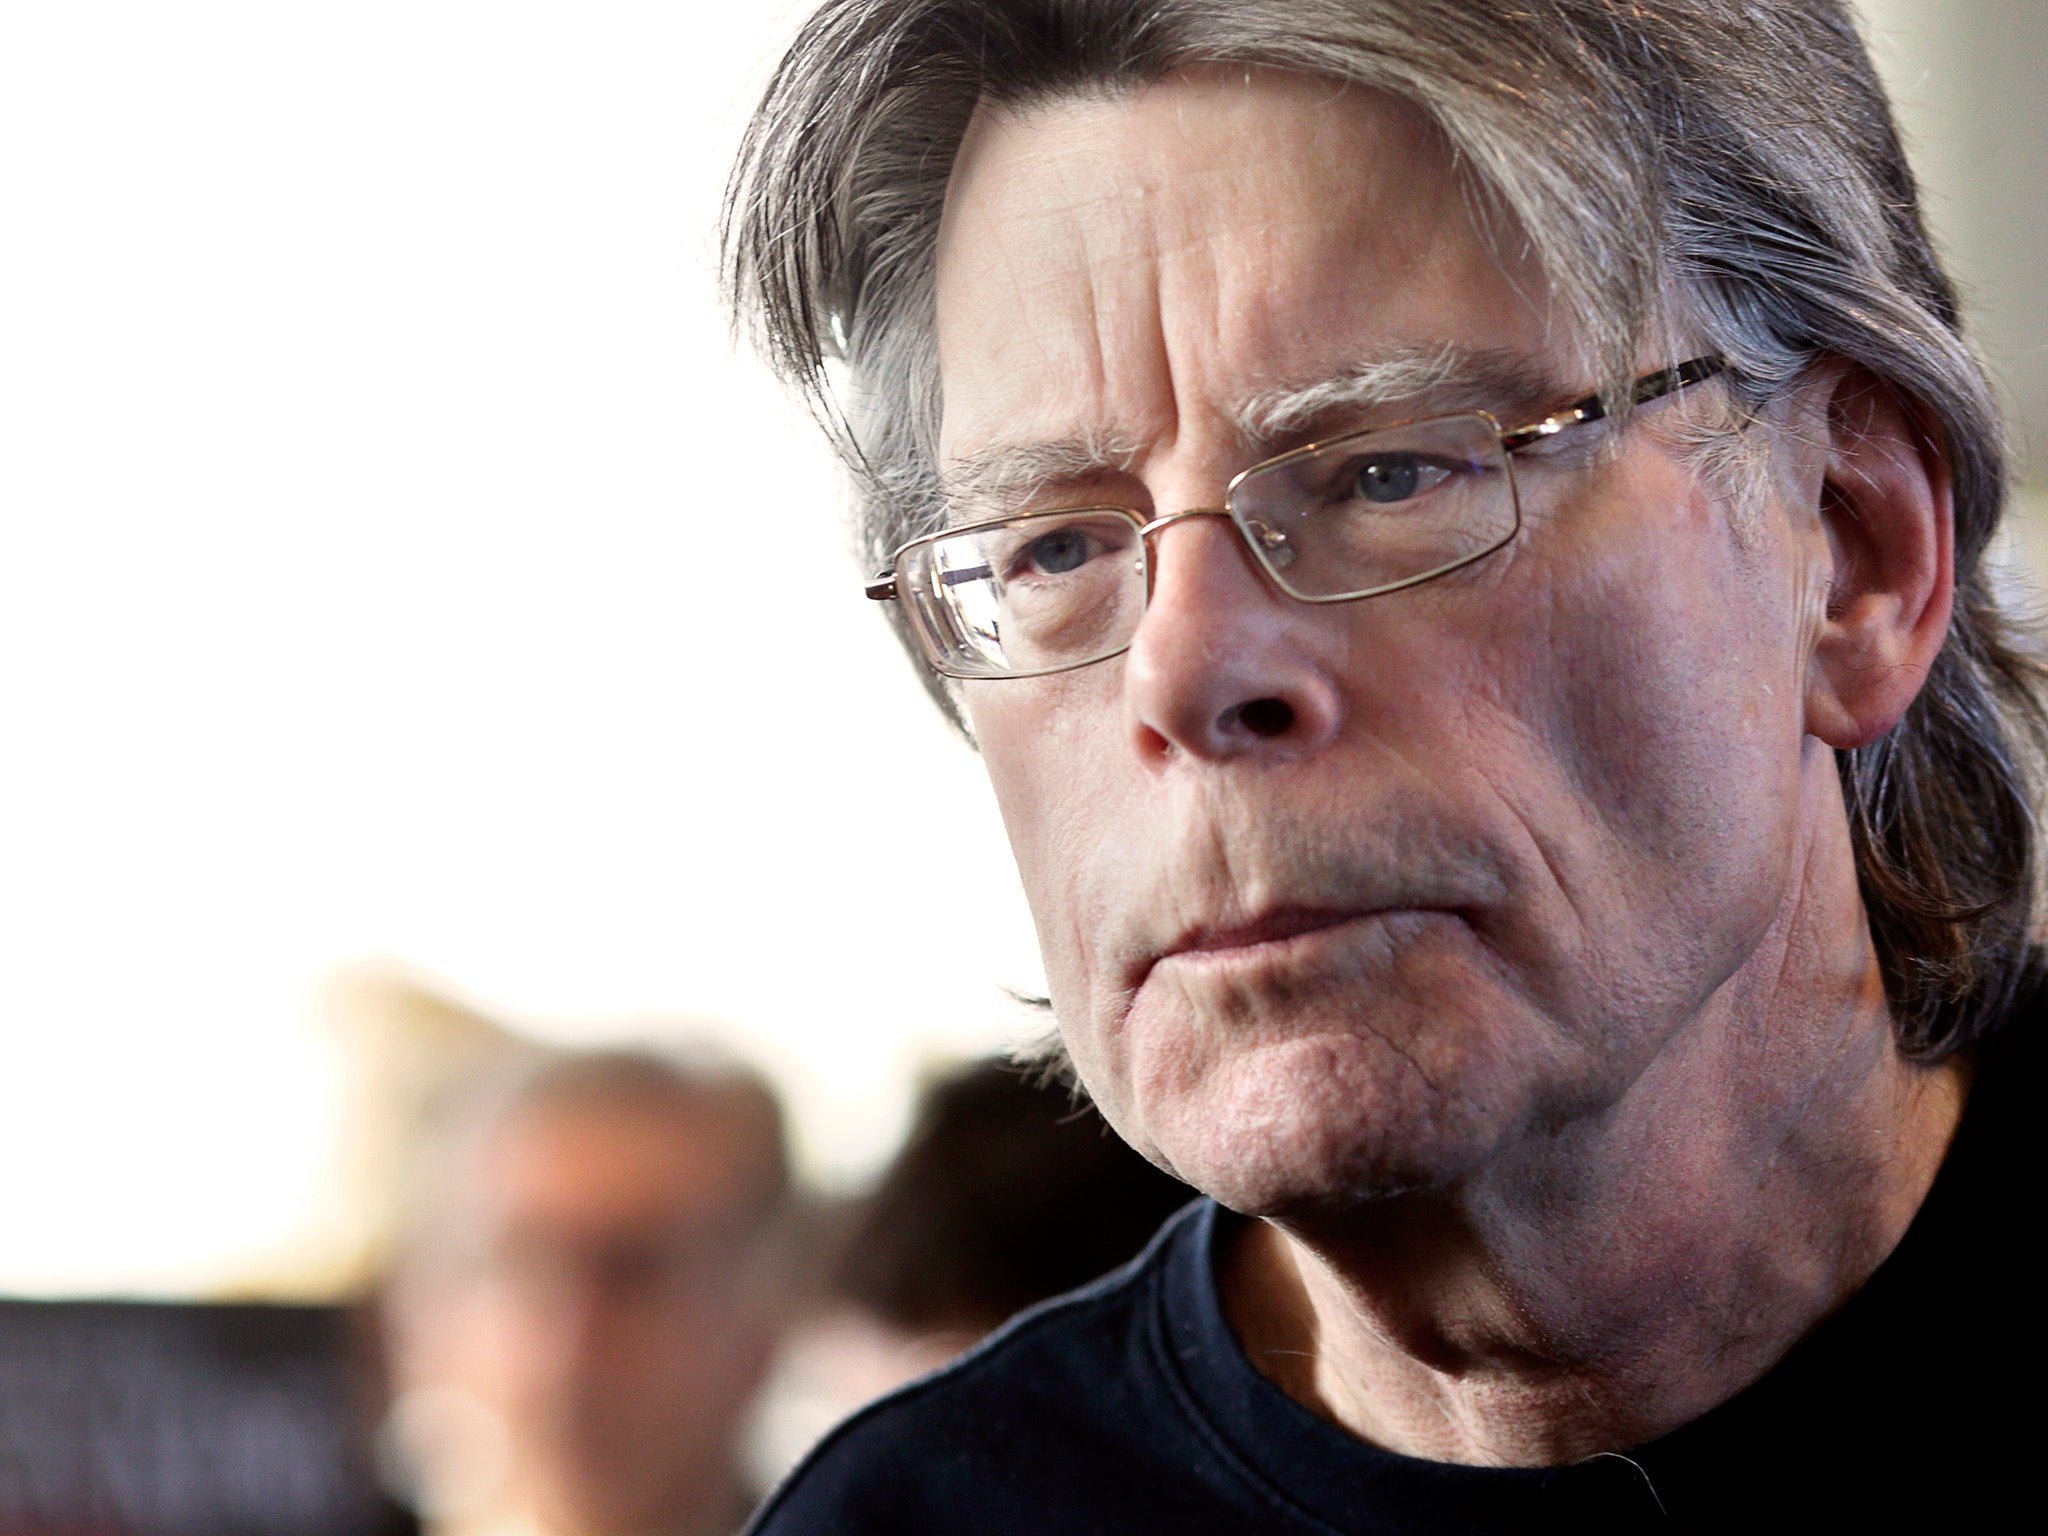 stephen king denounces proudly closed minds who are against gun stephen king denounces proudly closed minds who are against gun control in the wake of charleston shooting the independent